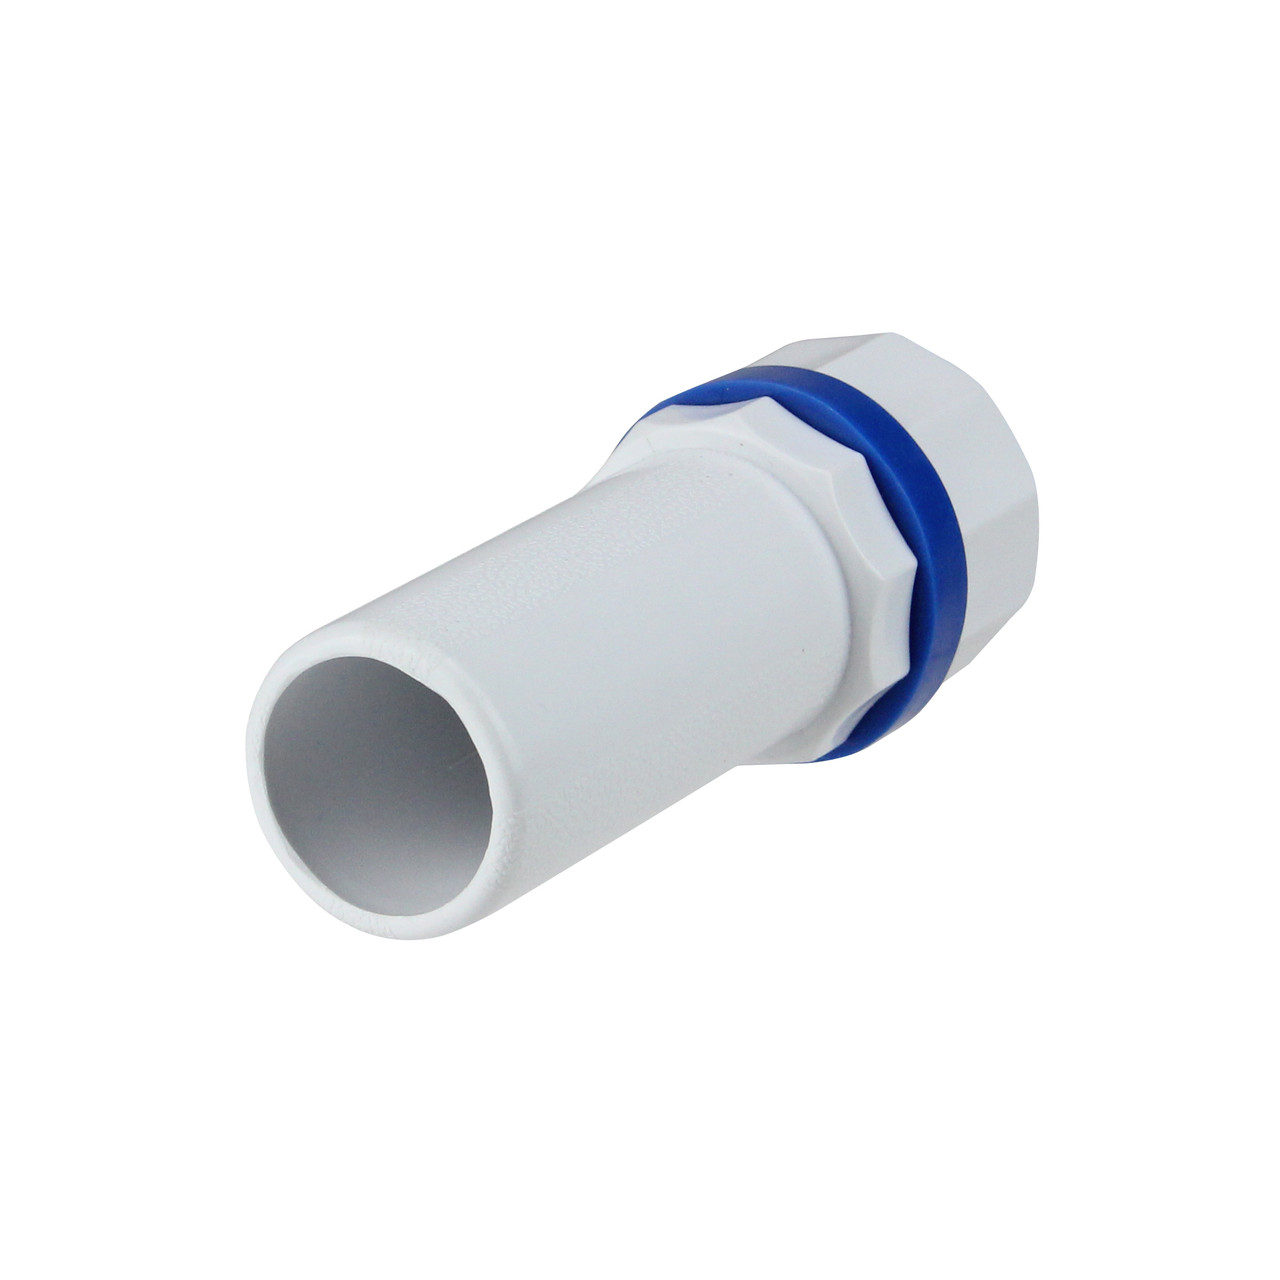 """1"""" White and Blue Deluxe Handle for Adjustable Swimming Pool Poles -  32803046"""